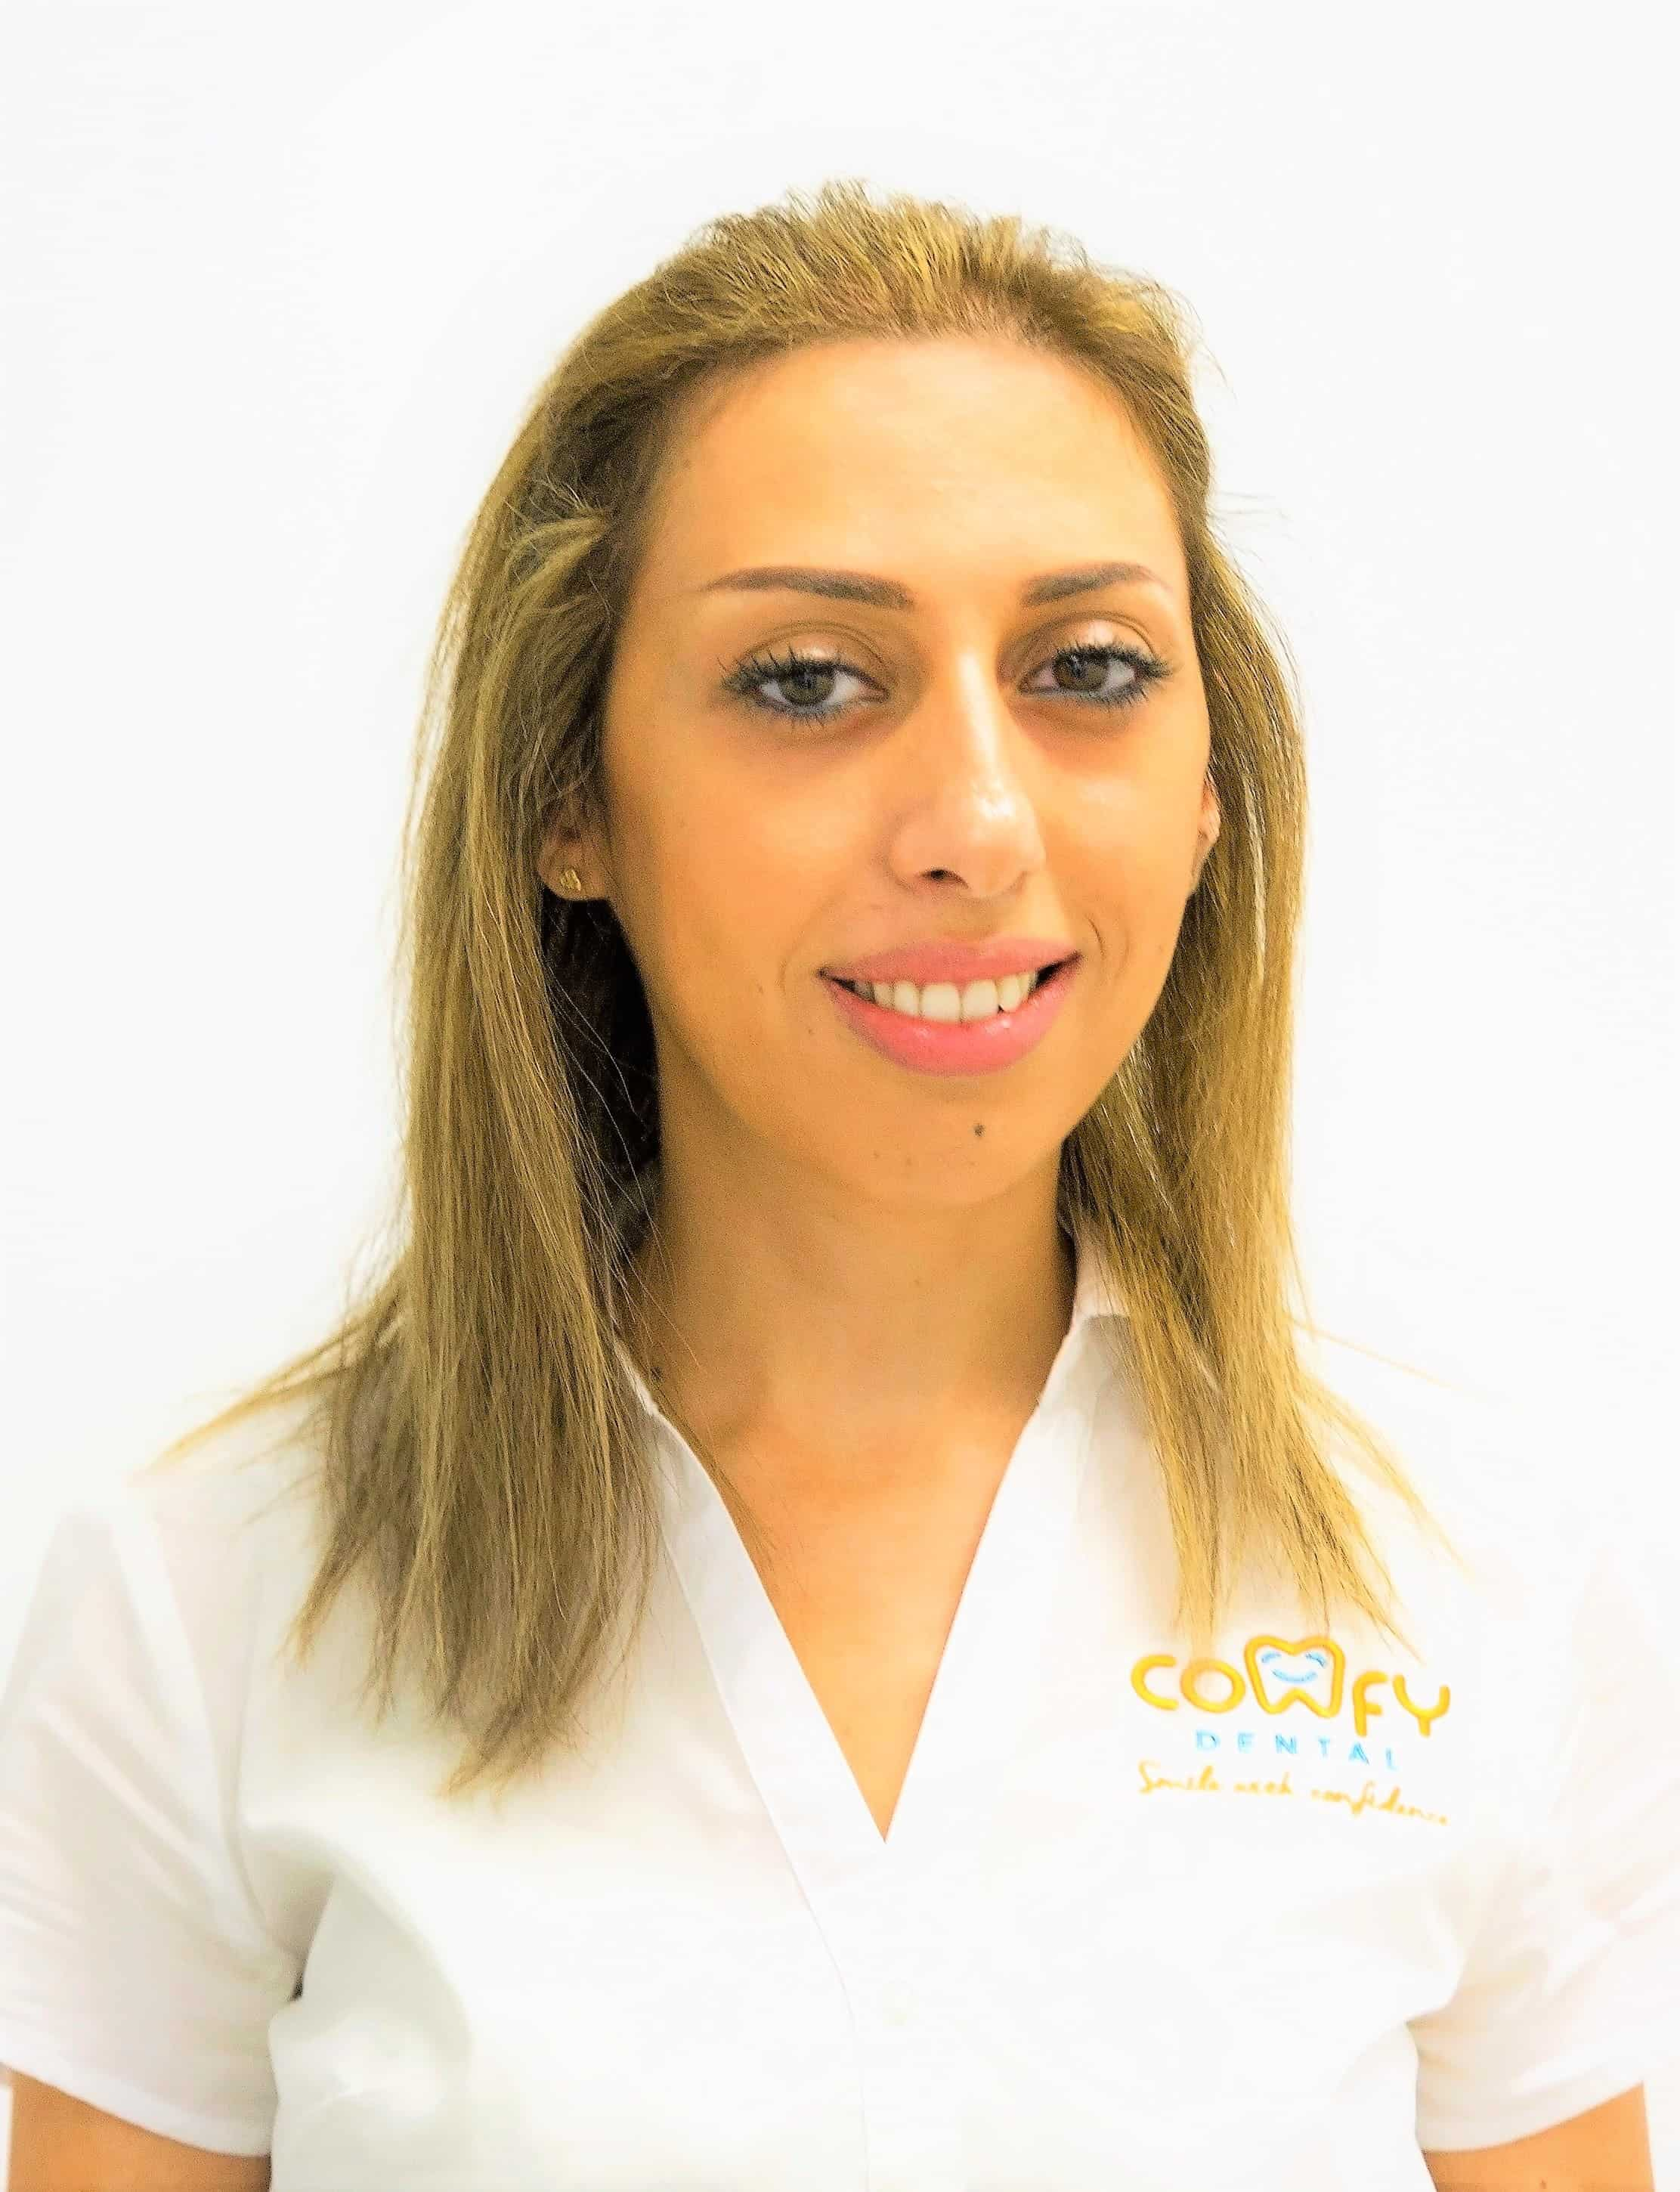 Dental Mandurah - Comfy Dental